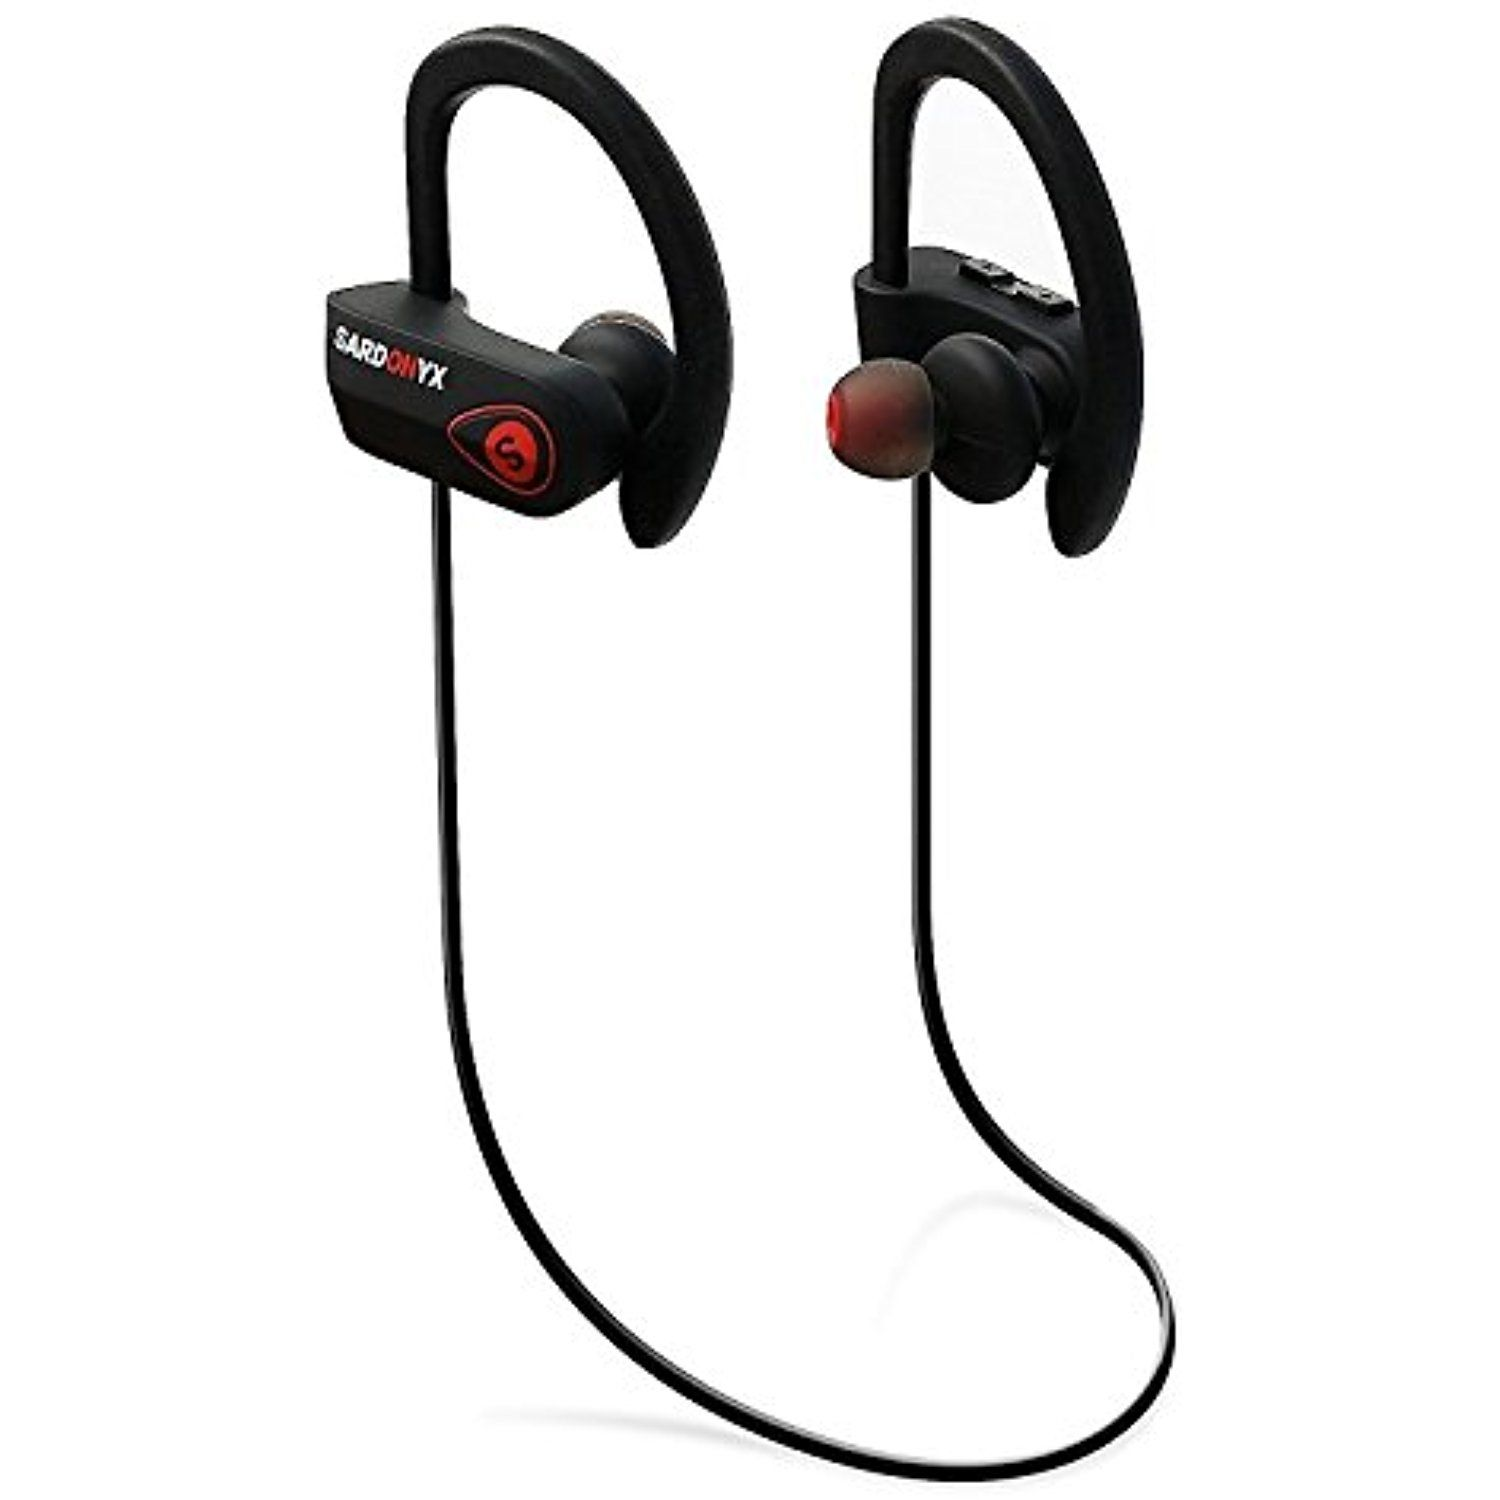 Sardonyx Sx 918 Bluetooth Headphones Best Wireless Sport Earphones Noise Cancelling Ipx7 Waterproof Hd Stereo Headset W Headphones Earbuds Wireless Headphones